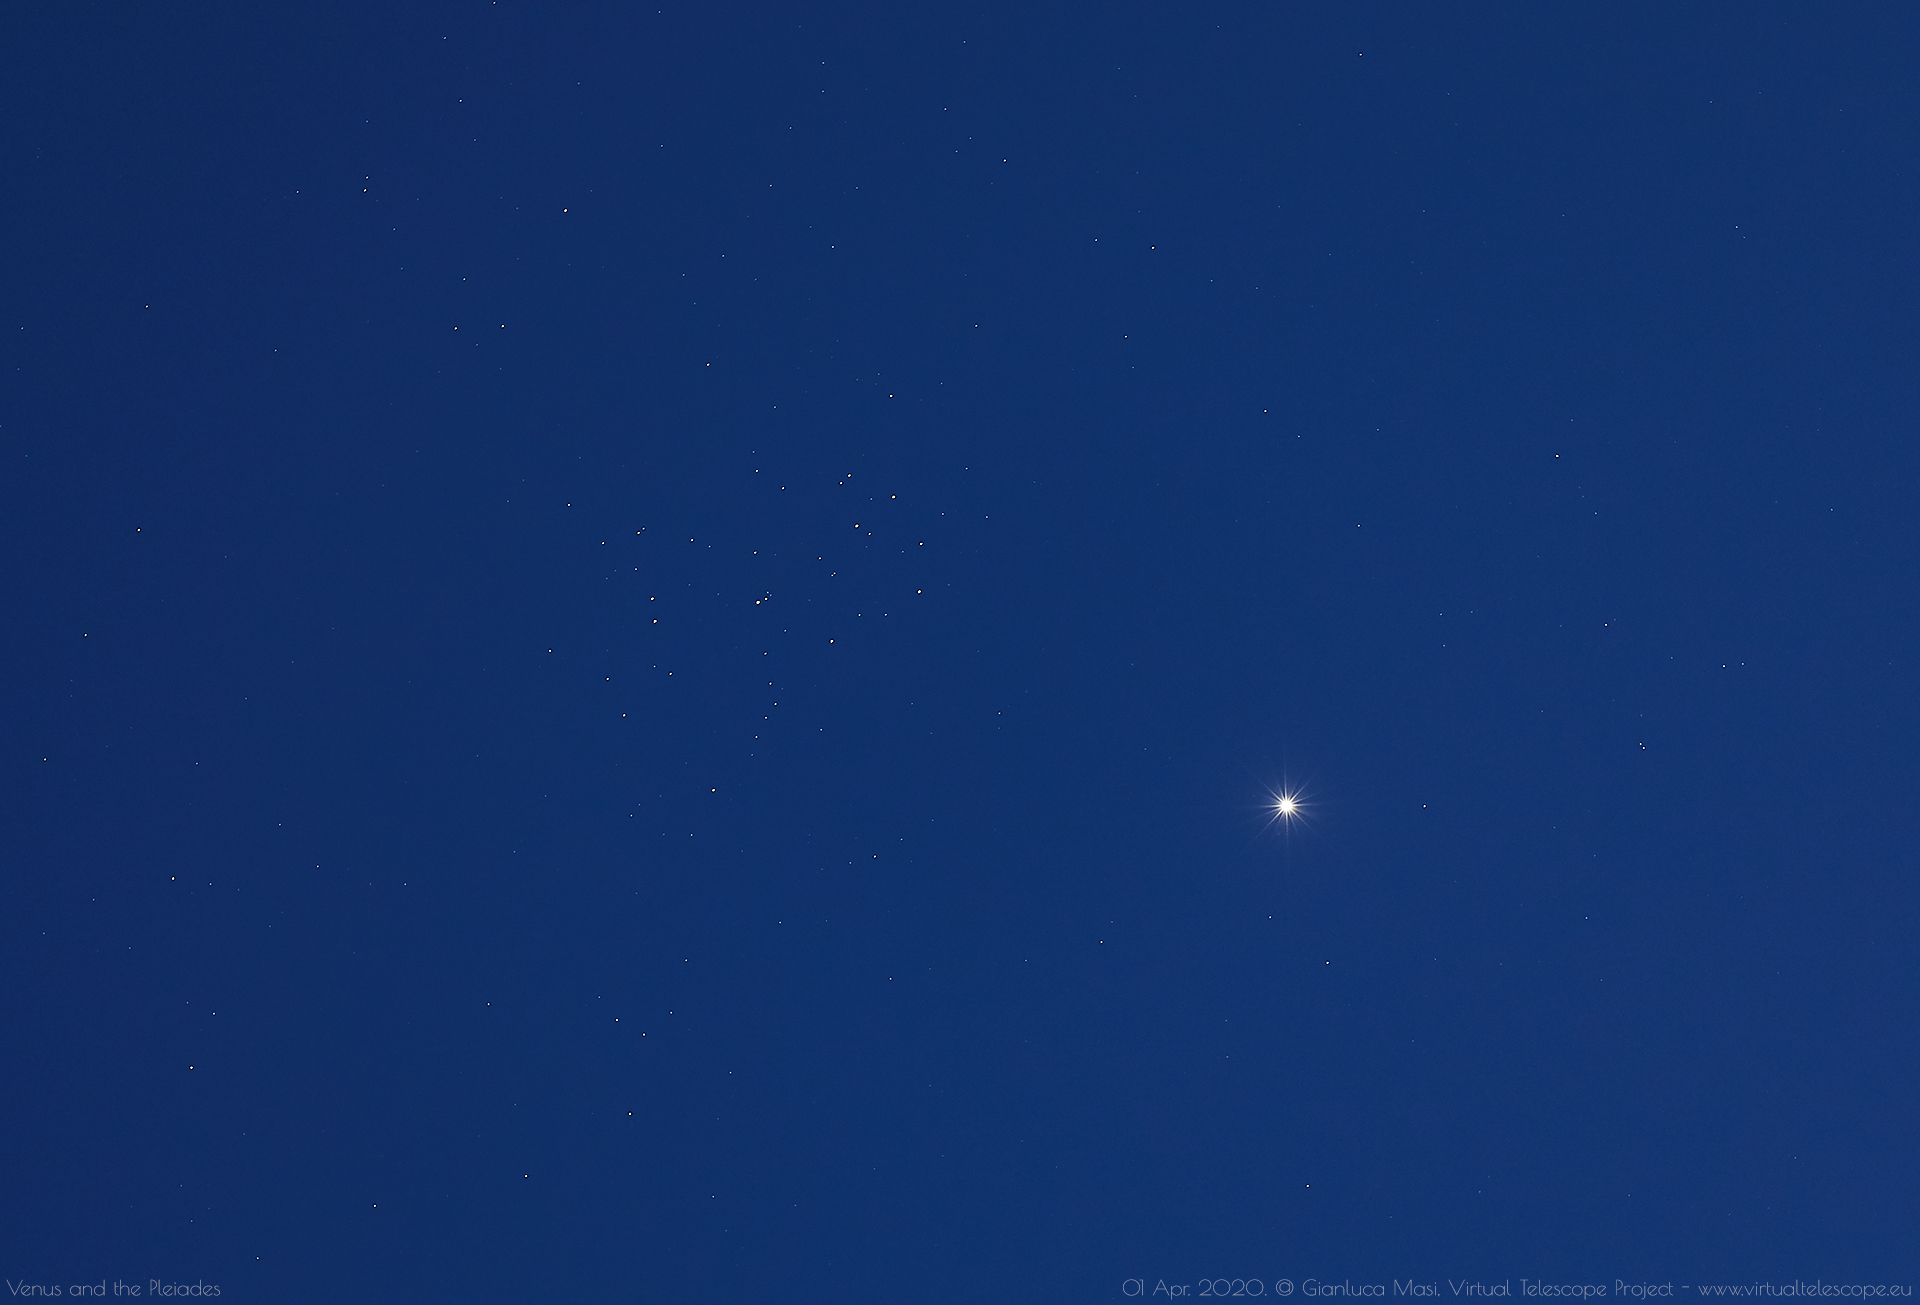 Venus and the Pleiades at dusk, while the sky was still a bit clear. 1 Apr. 2020